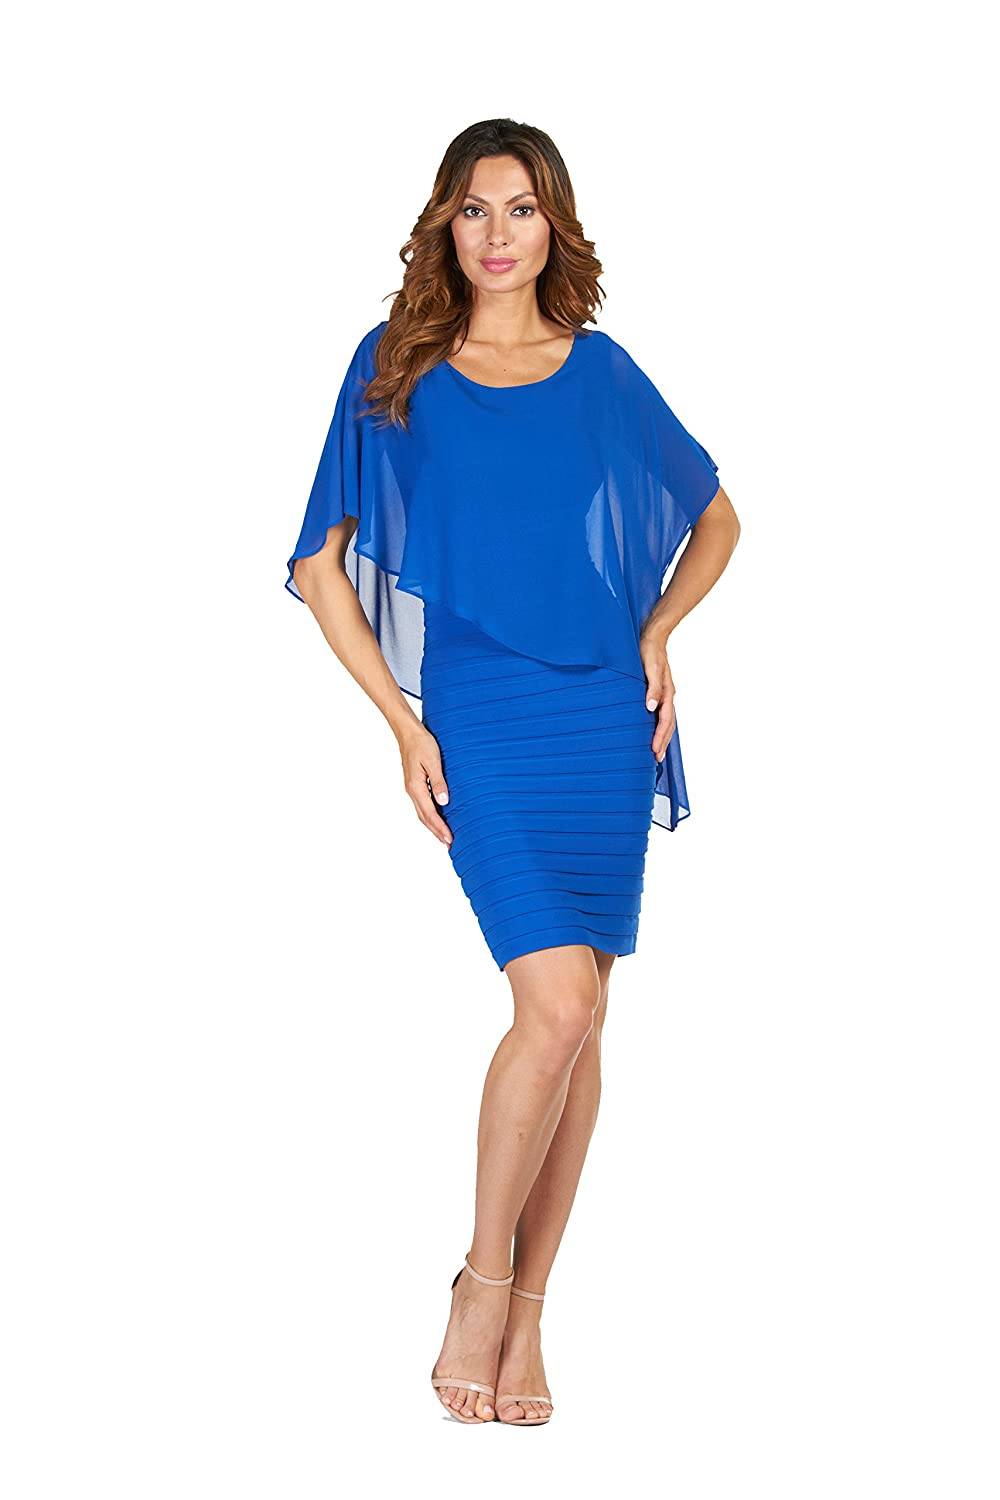 763ba6313a Frank Lyman Women s Dress Style 51027 Blue at Amazon Women s Clothing store